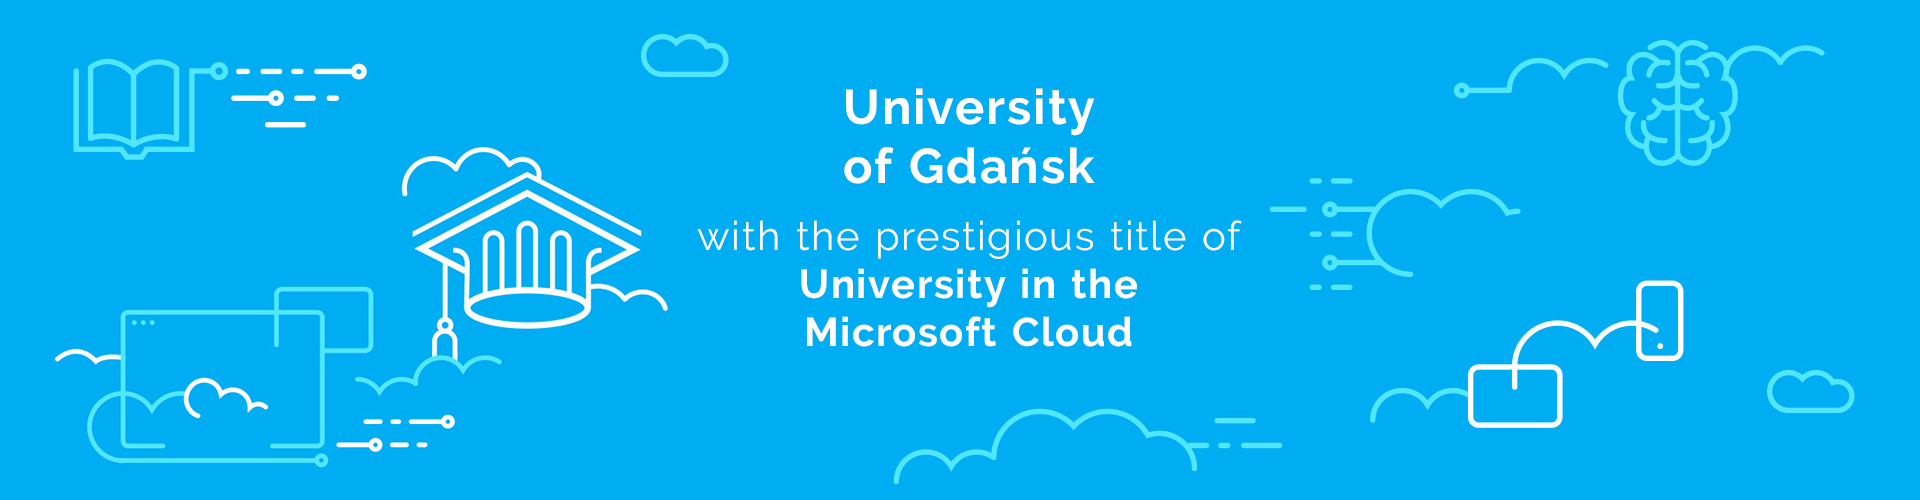 University of Gdańsk with the prestigious title of University in the Microsoft Cloud